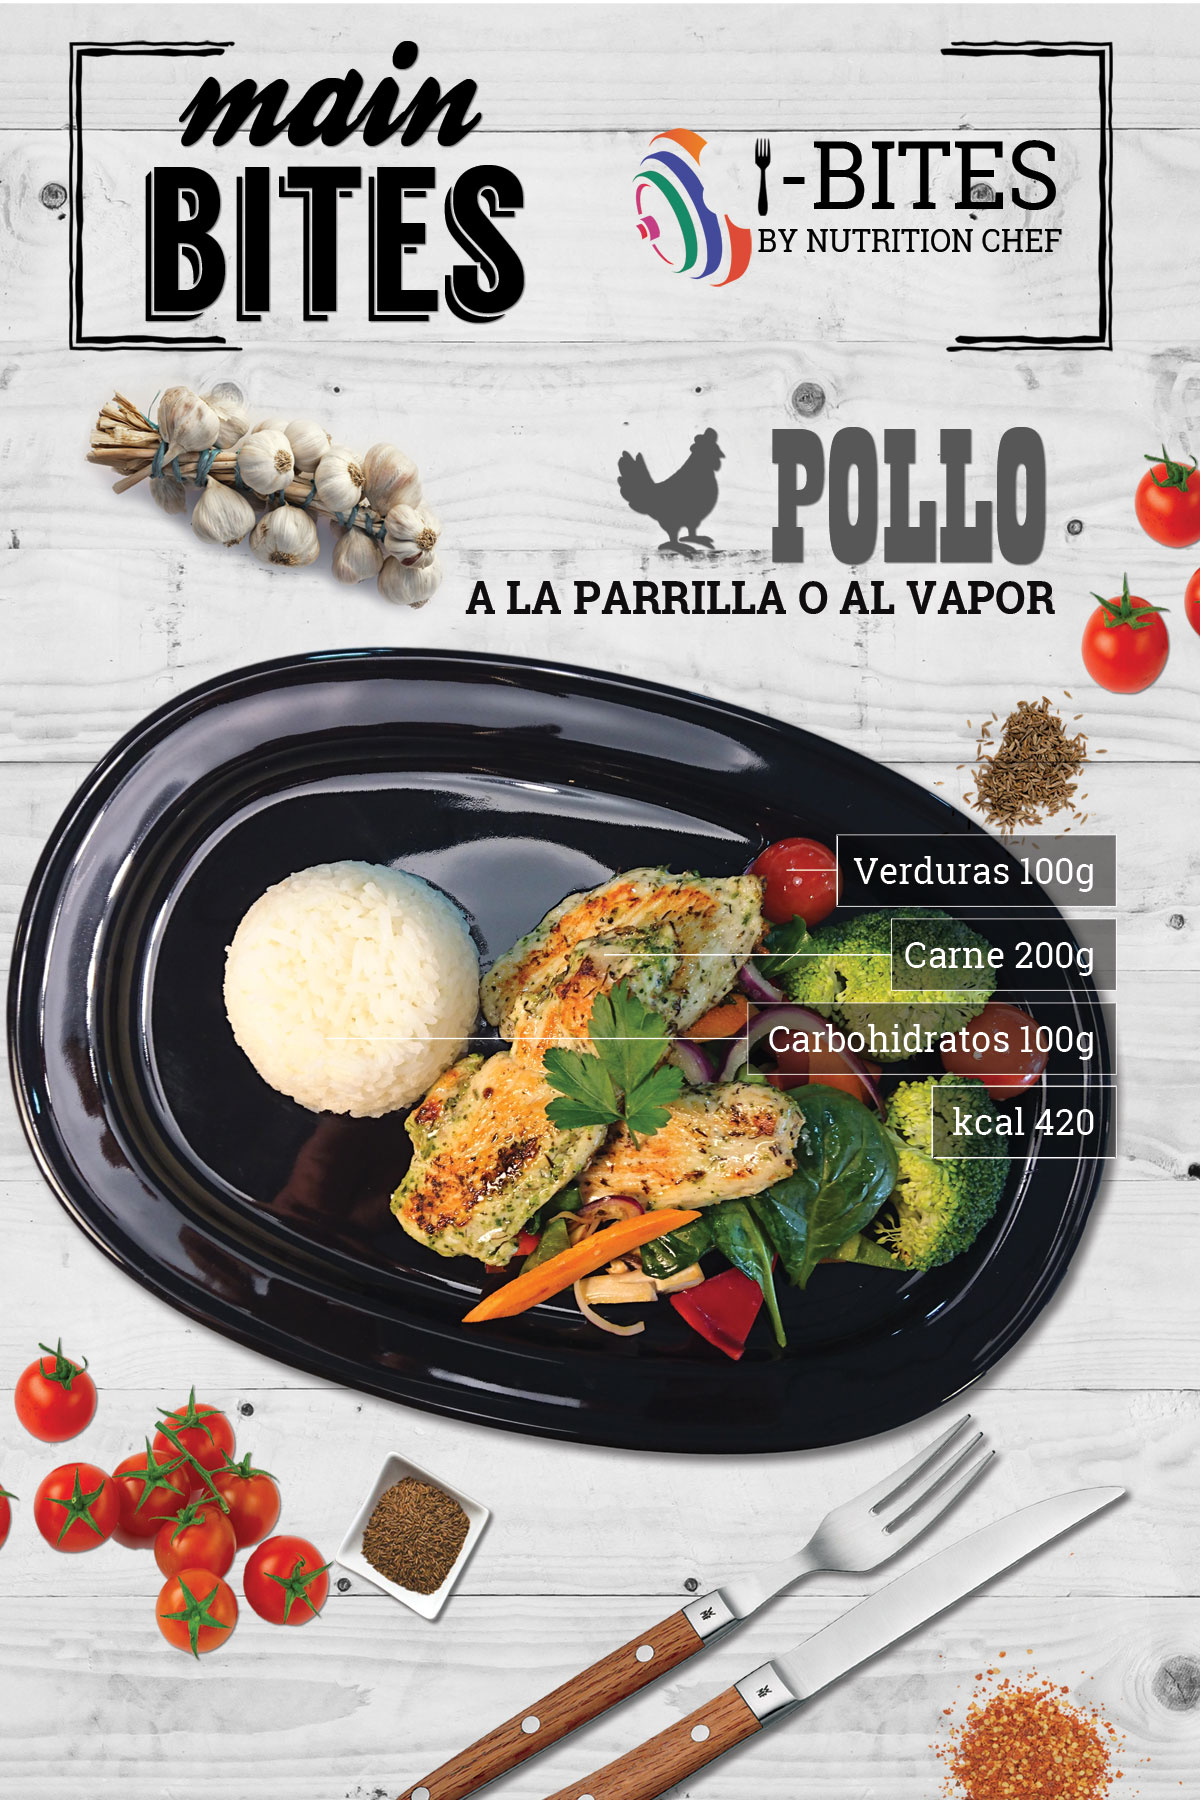 I Bites Marbella grilled Chicken Main Bite 420 Kcal